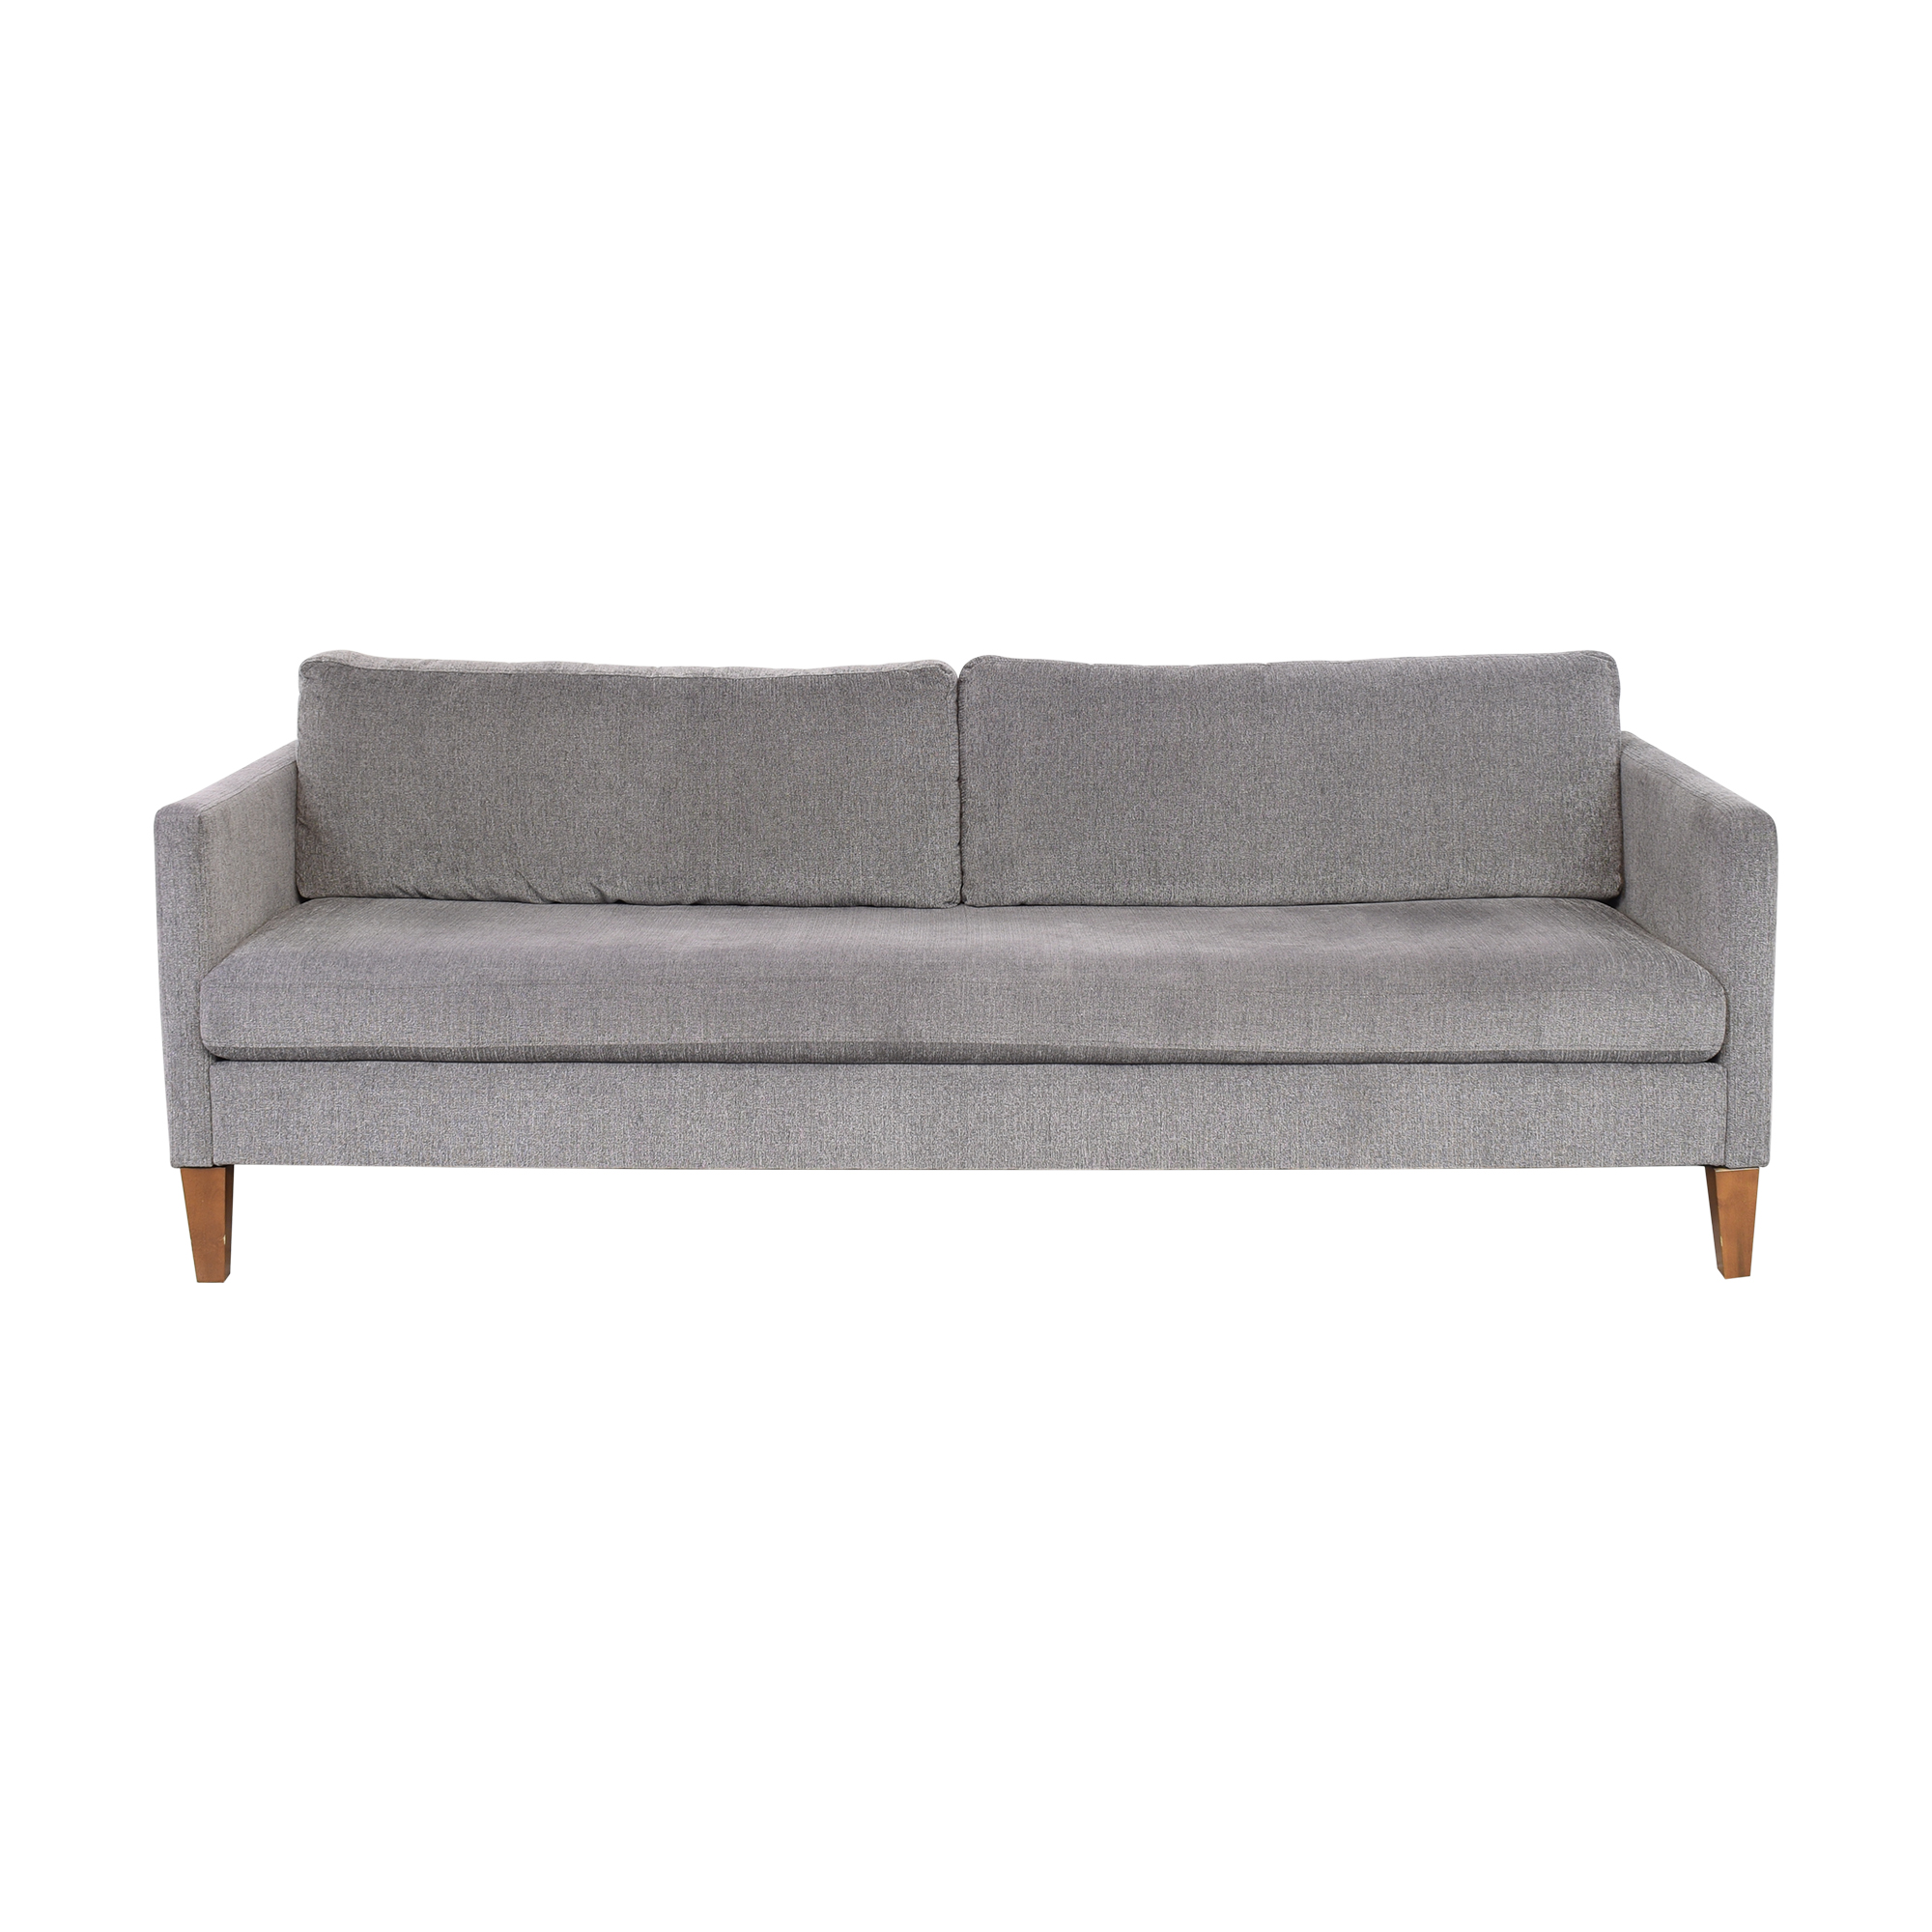 Van Gogh Designs Furniture Van Gogh Designs Grey Watford Sofa pa